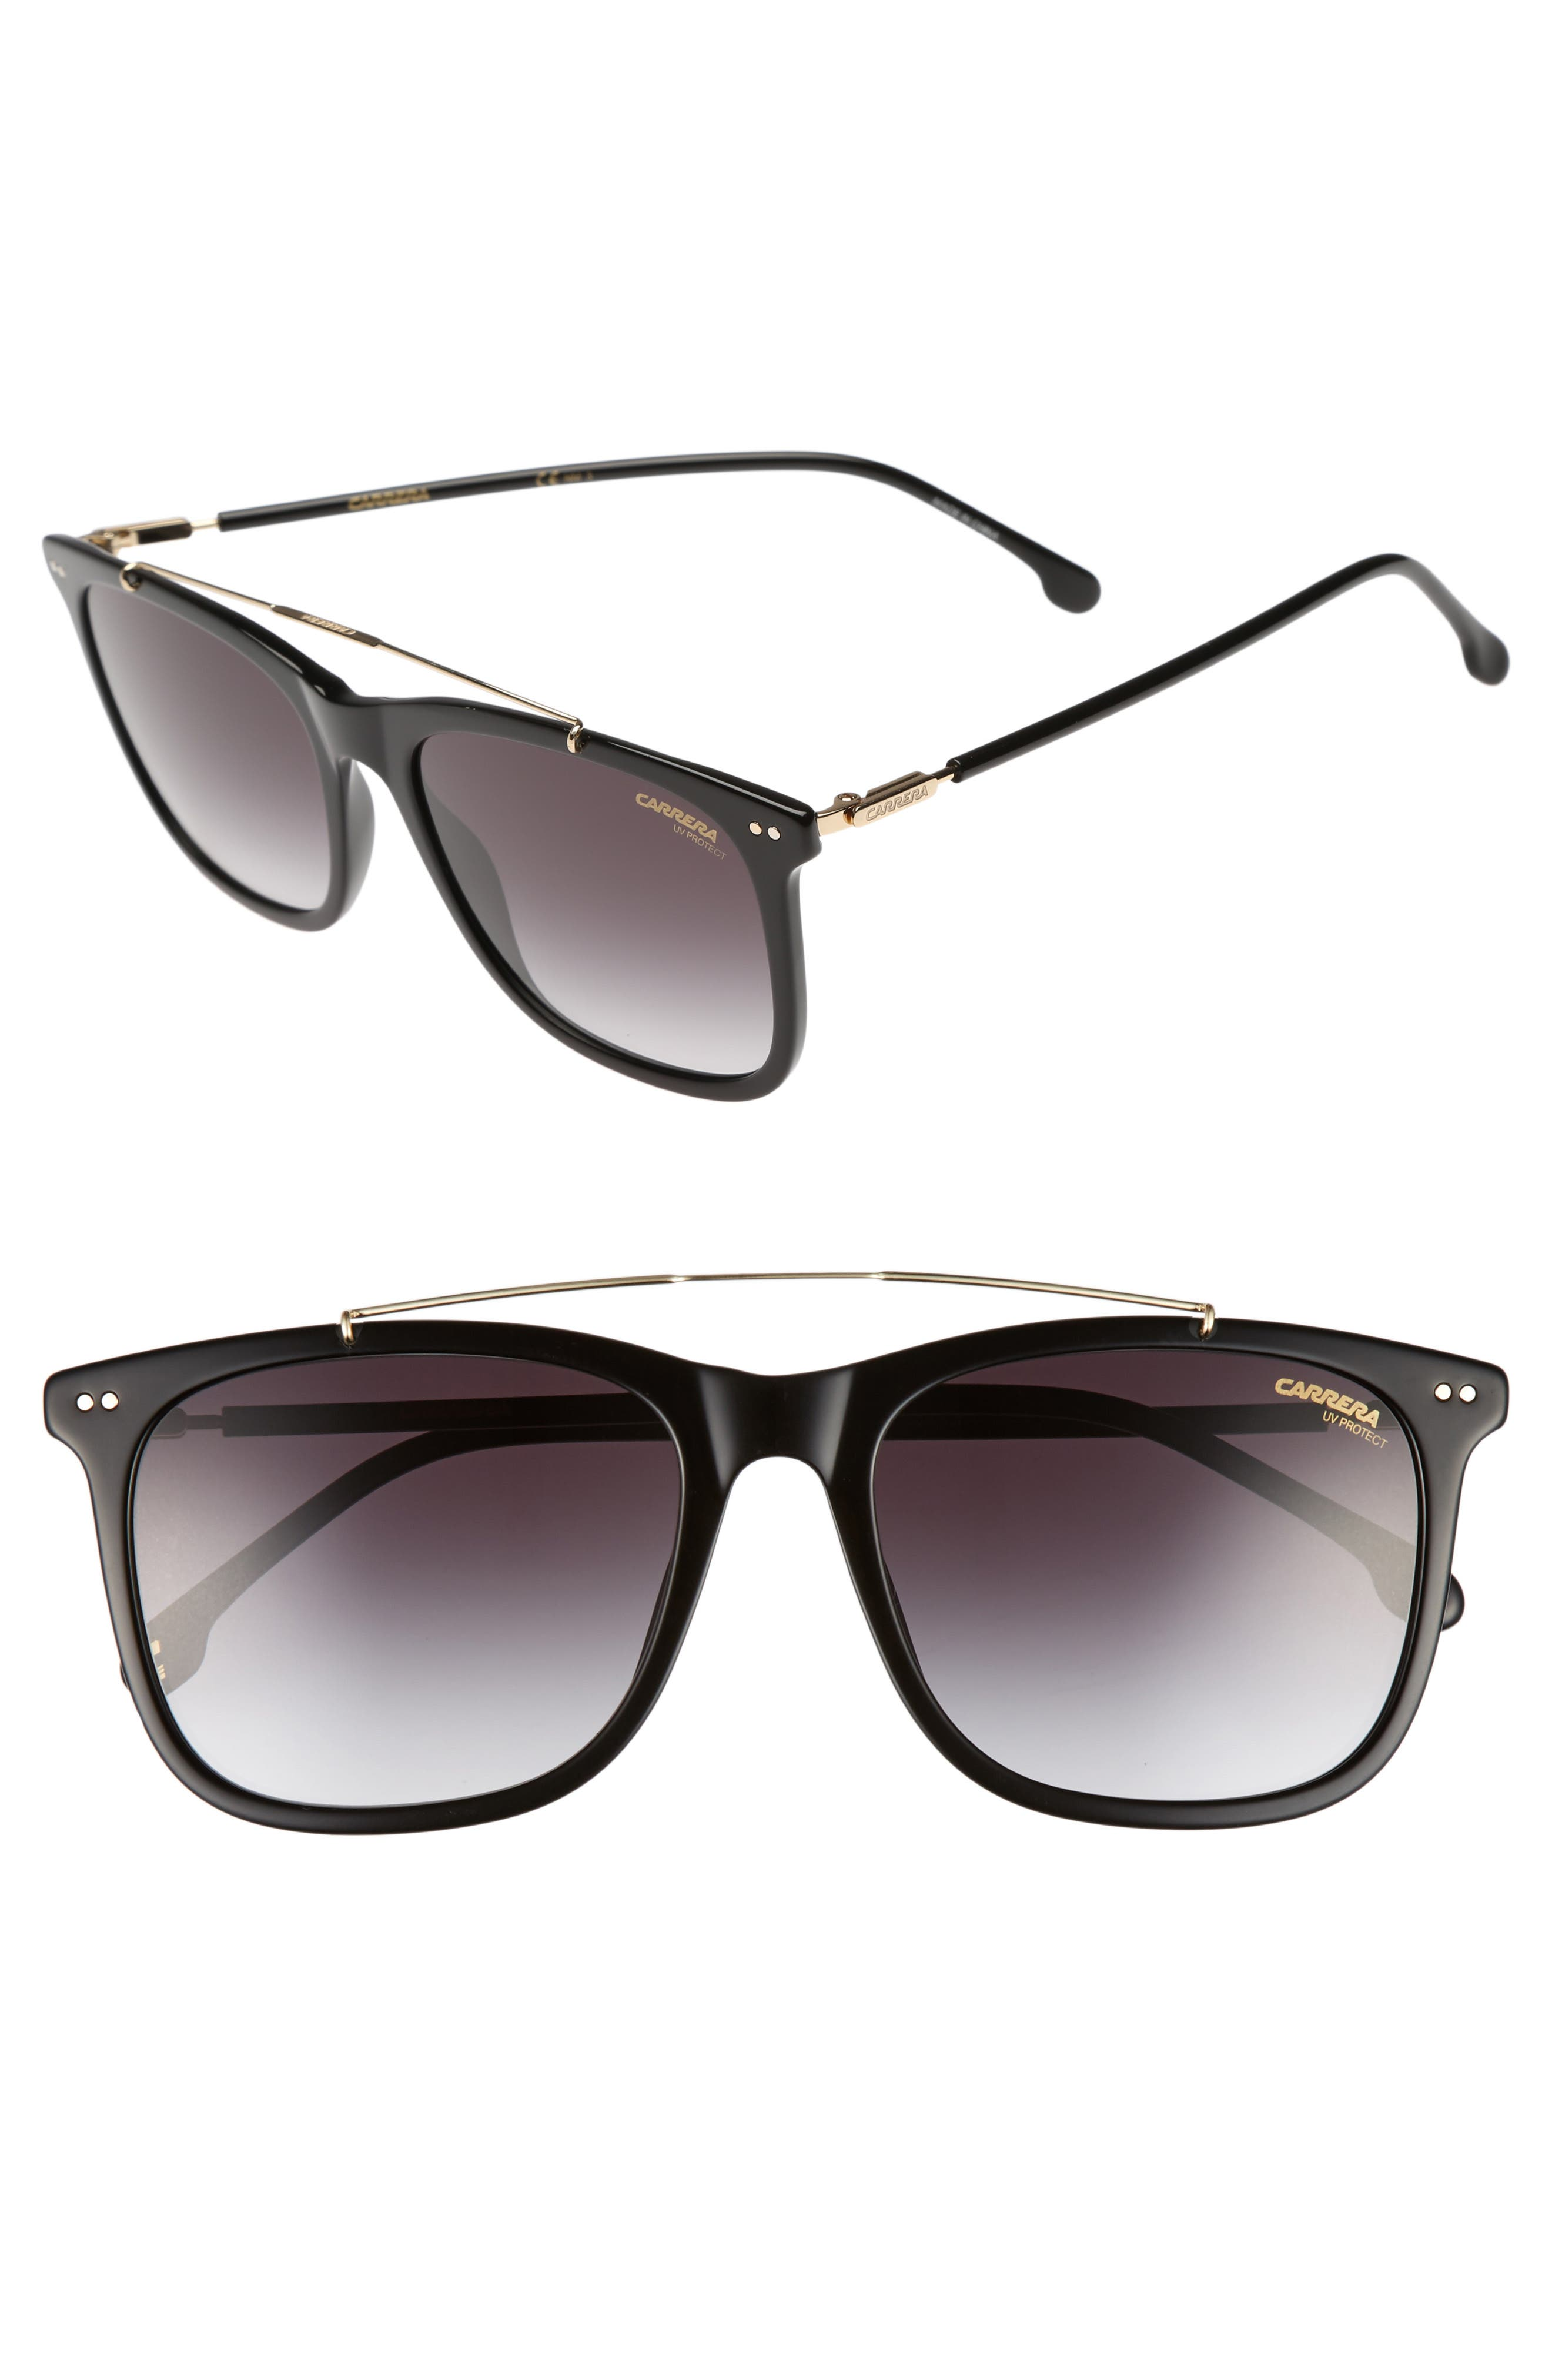 Carrera 150/s 55Mm Sunglasses - Black/ Dark Gray Gradient